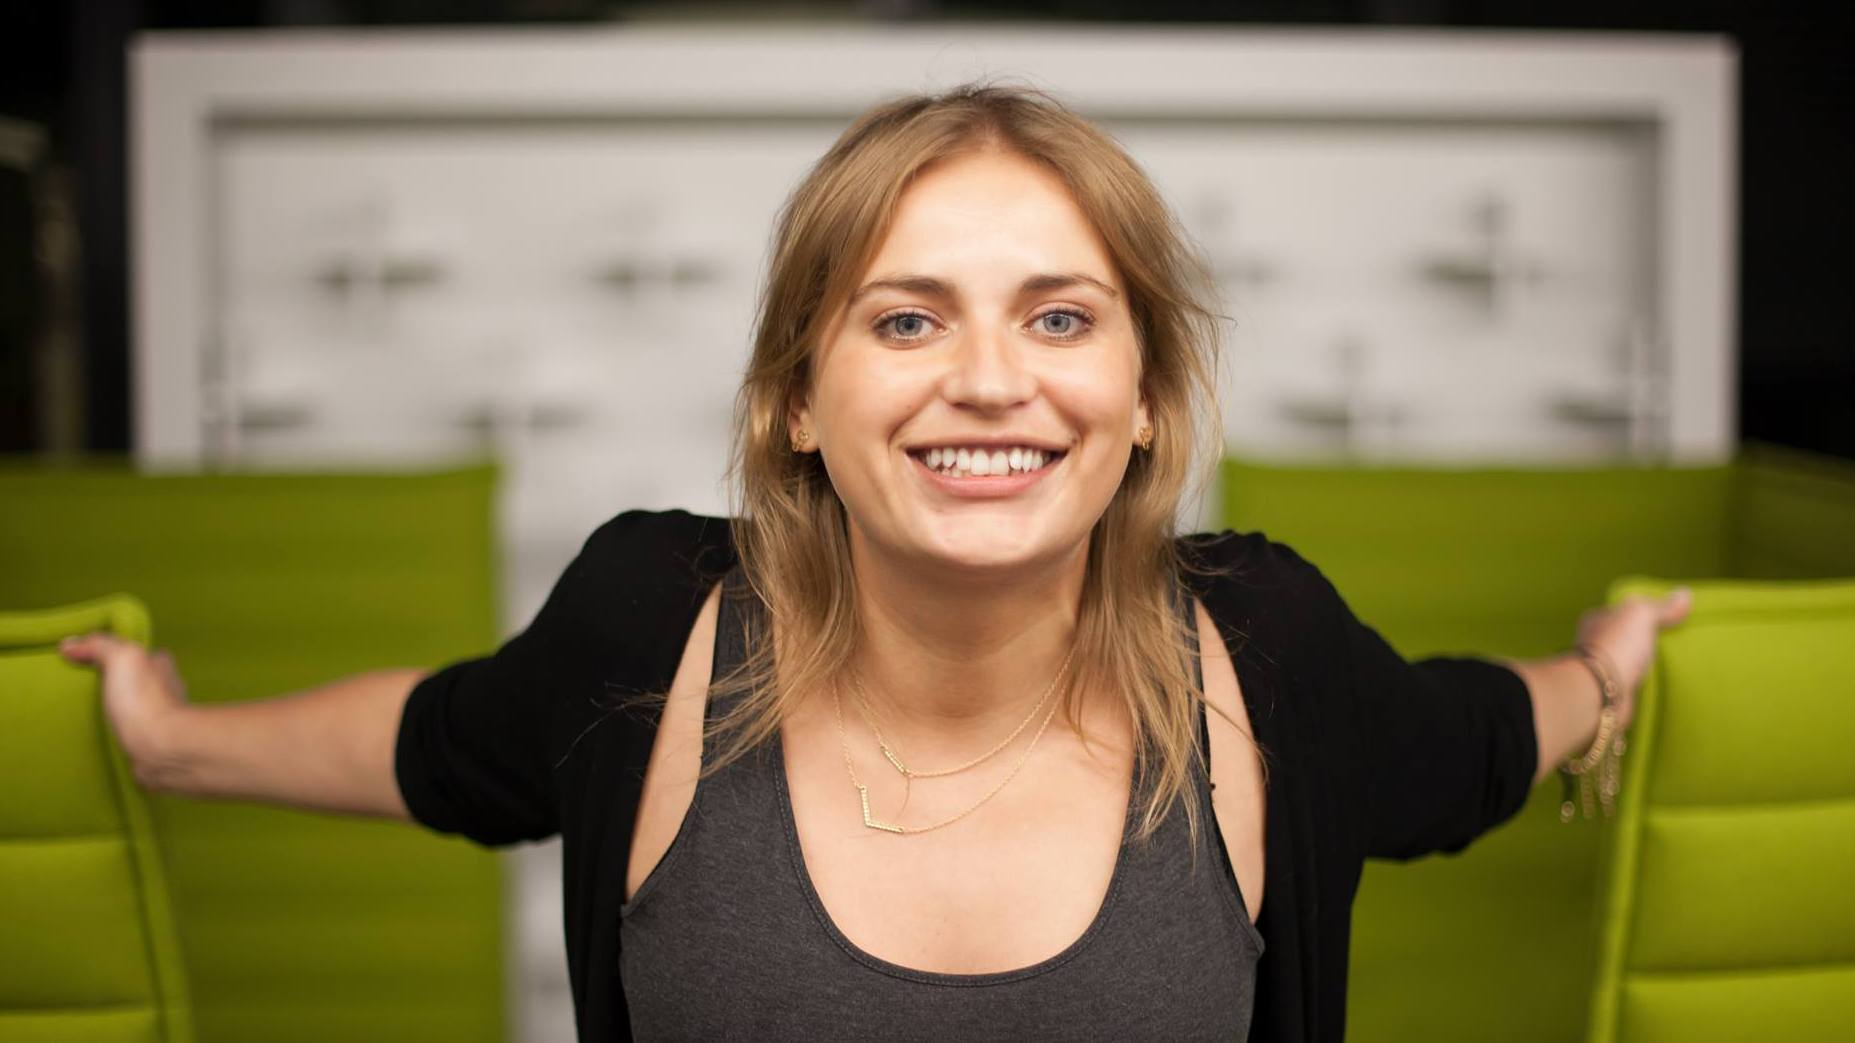 Agata Palmowska joins the creative team of Isobar Poland